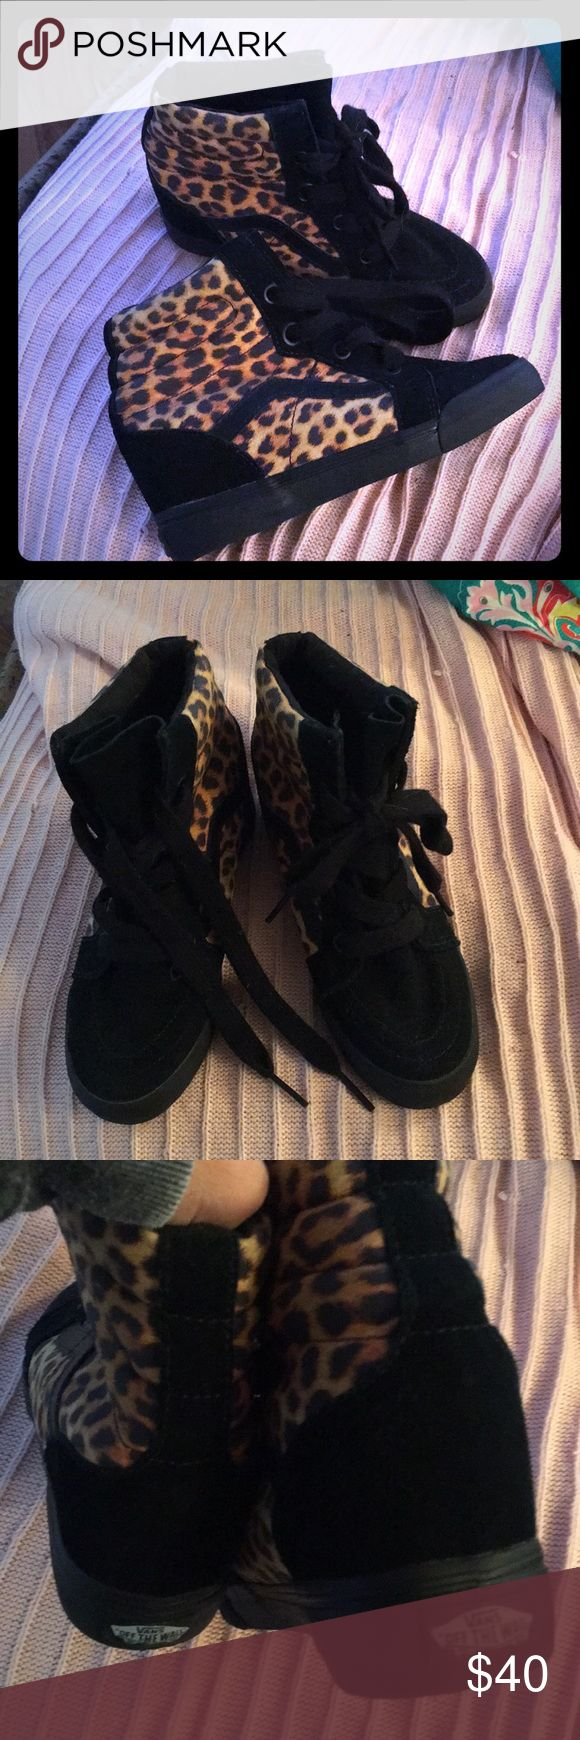 Rare wedge heel leopard Vans 7 Chanel your inner skater girl with a little Glamour in these hot Leopard Vans with Wedge heel! Size 7 in good condition!! Vans Shoes Athletic Shoes